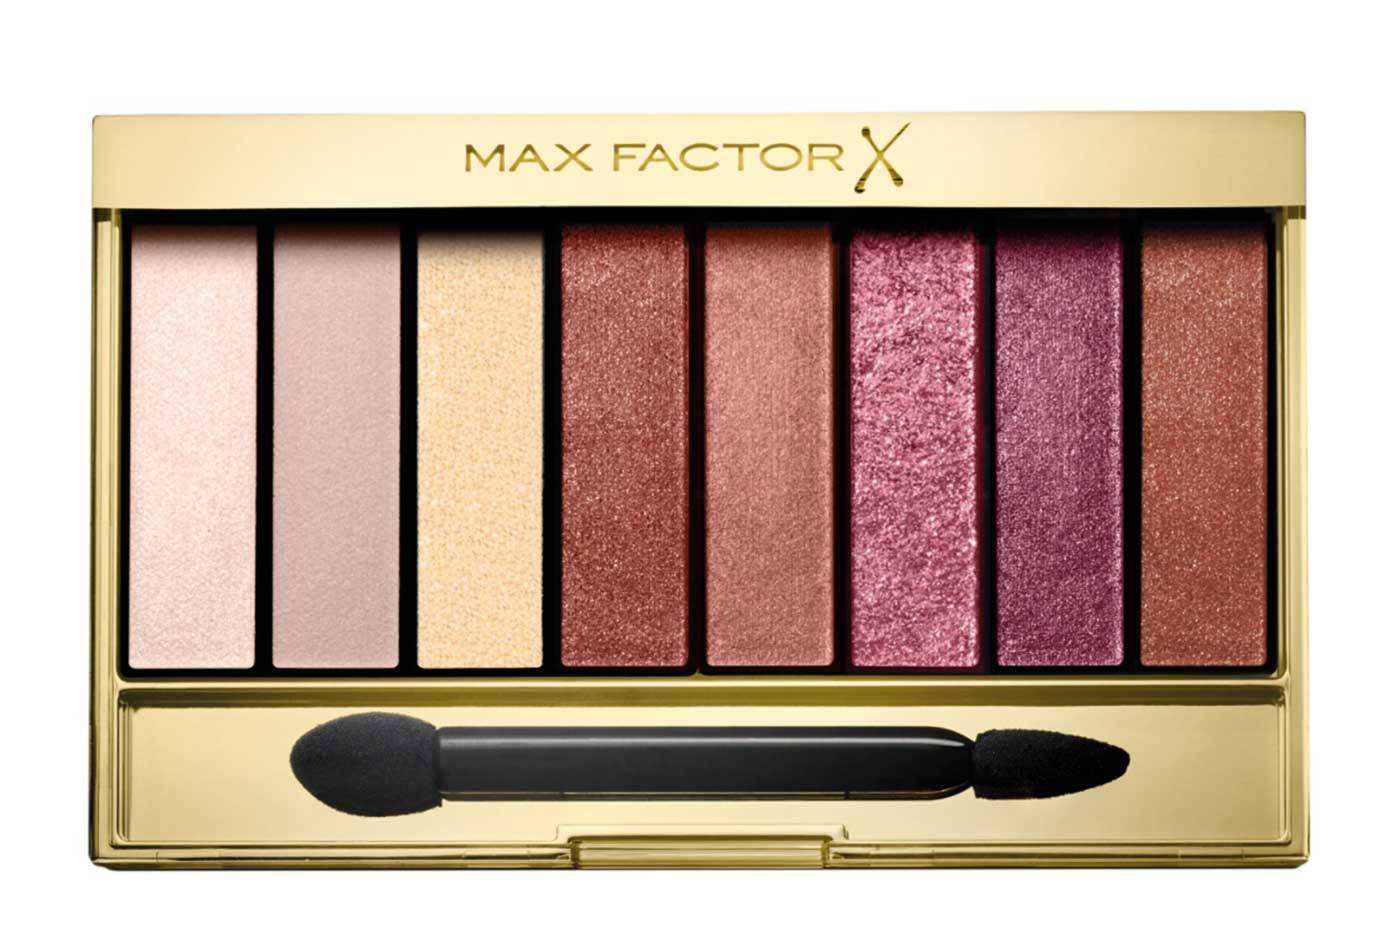 Become a pro at eye make-up with Max Factor